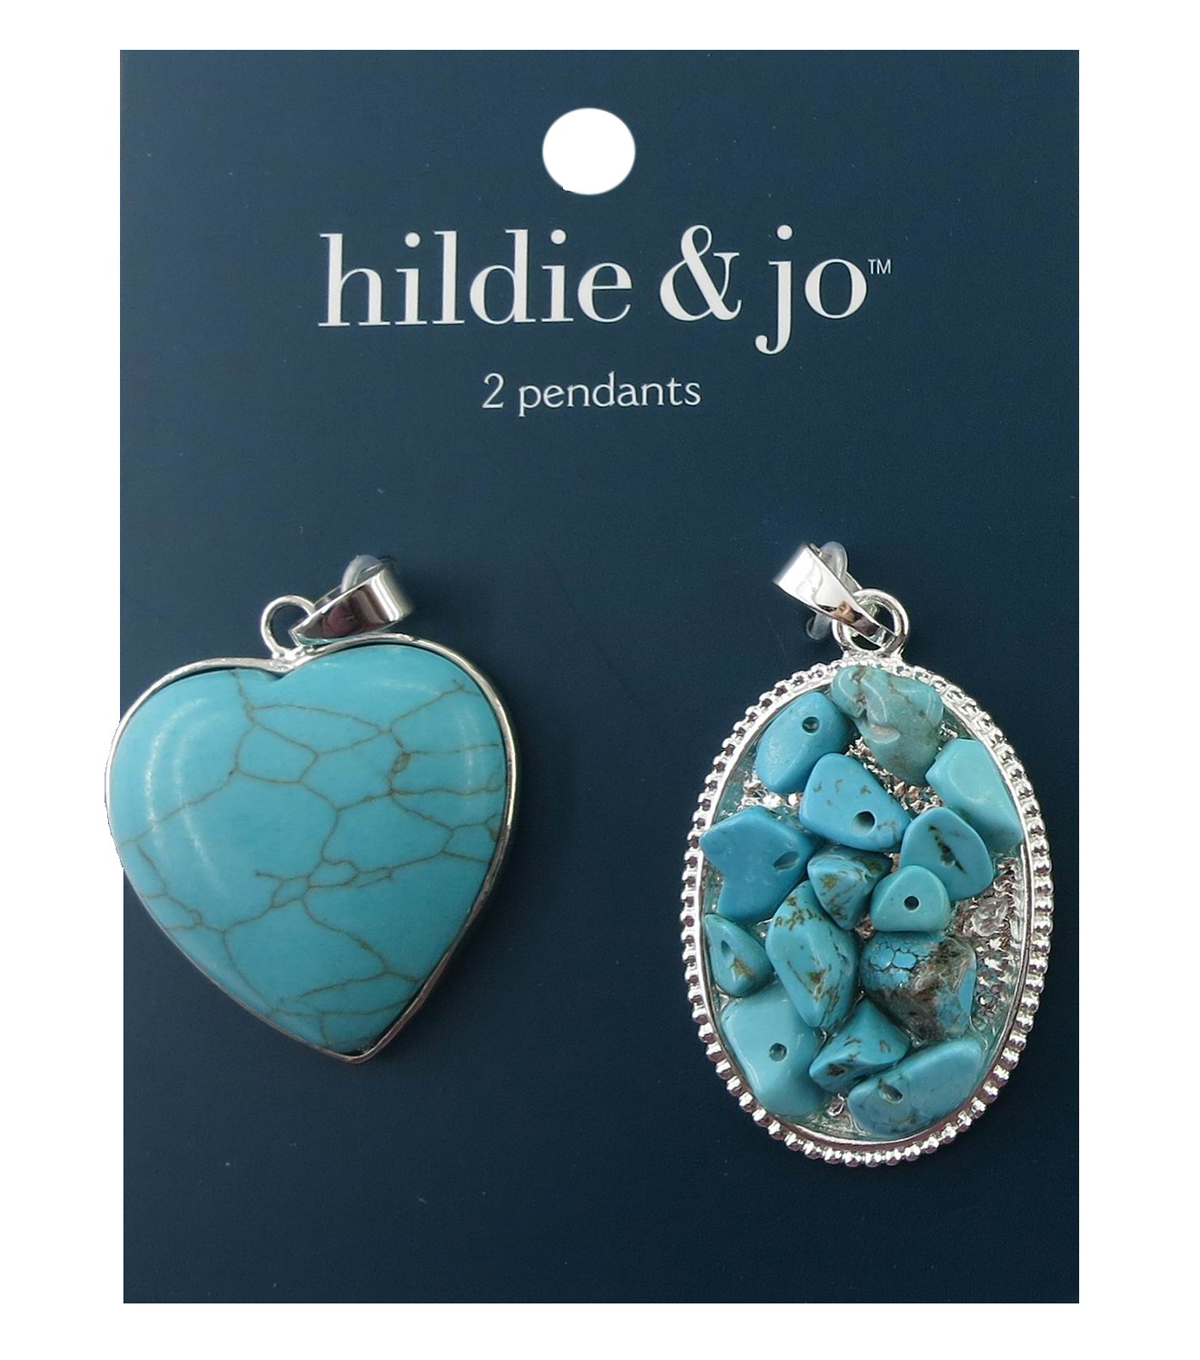 hildie & jo 2 Pack Silver Pendants-Turquoise Stone & Beads